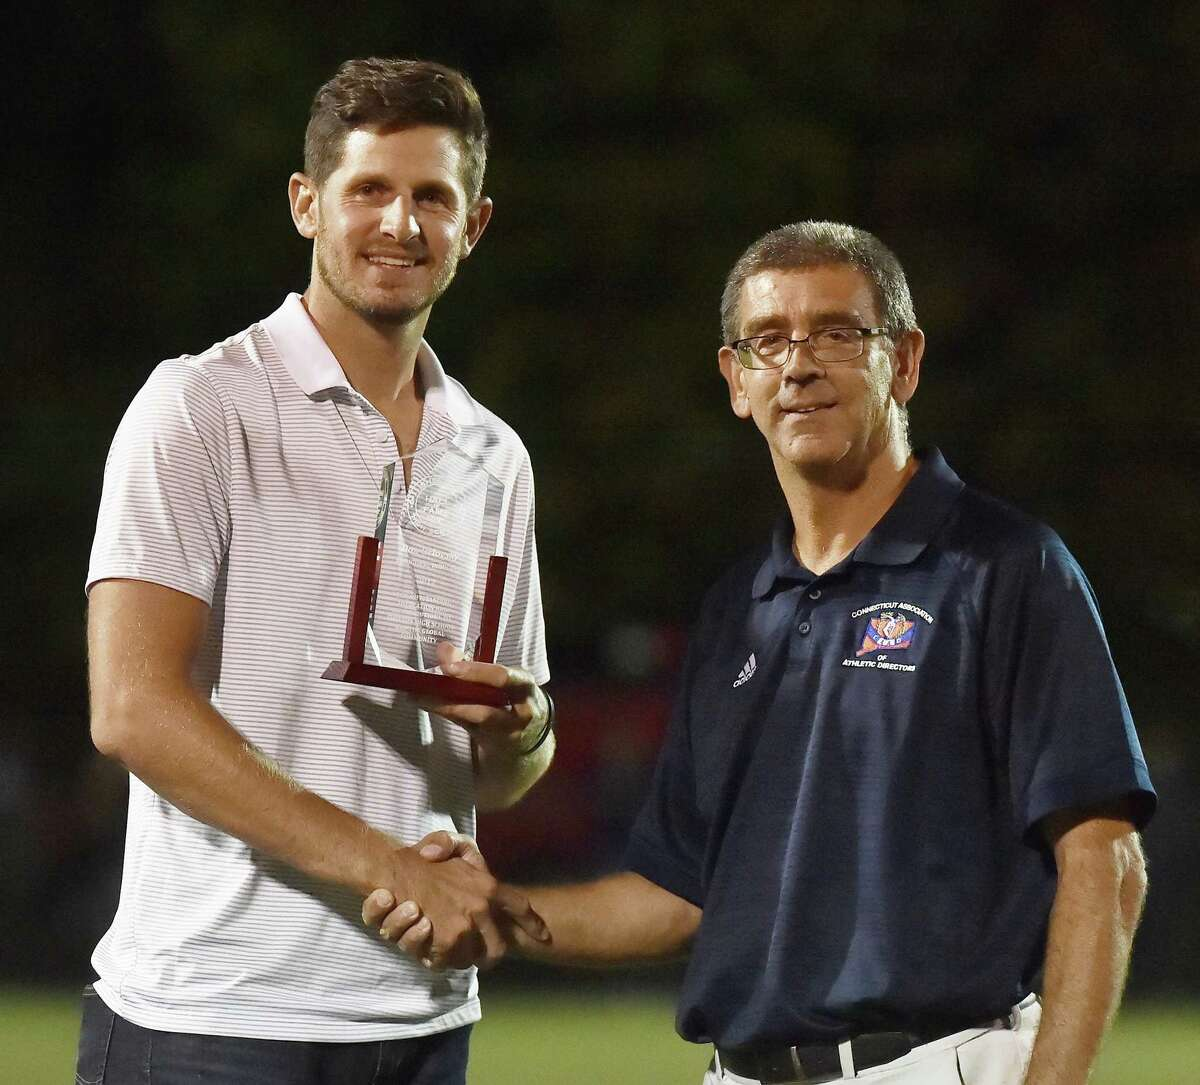 Shelton Athletic Director John Niskir, right, inducts former Gaels standout Dan Orlovsky into the Shelton High School Sports Hall of Fame on Oct. 6, 2017.